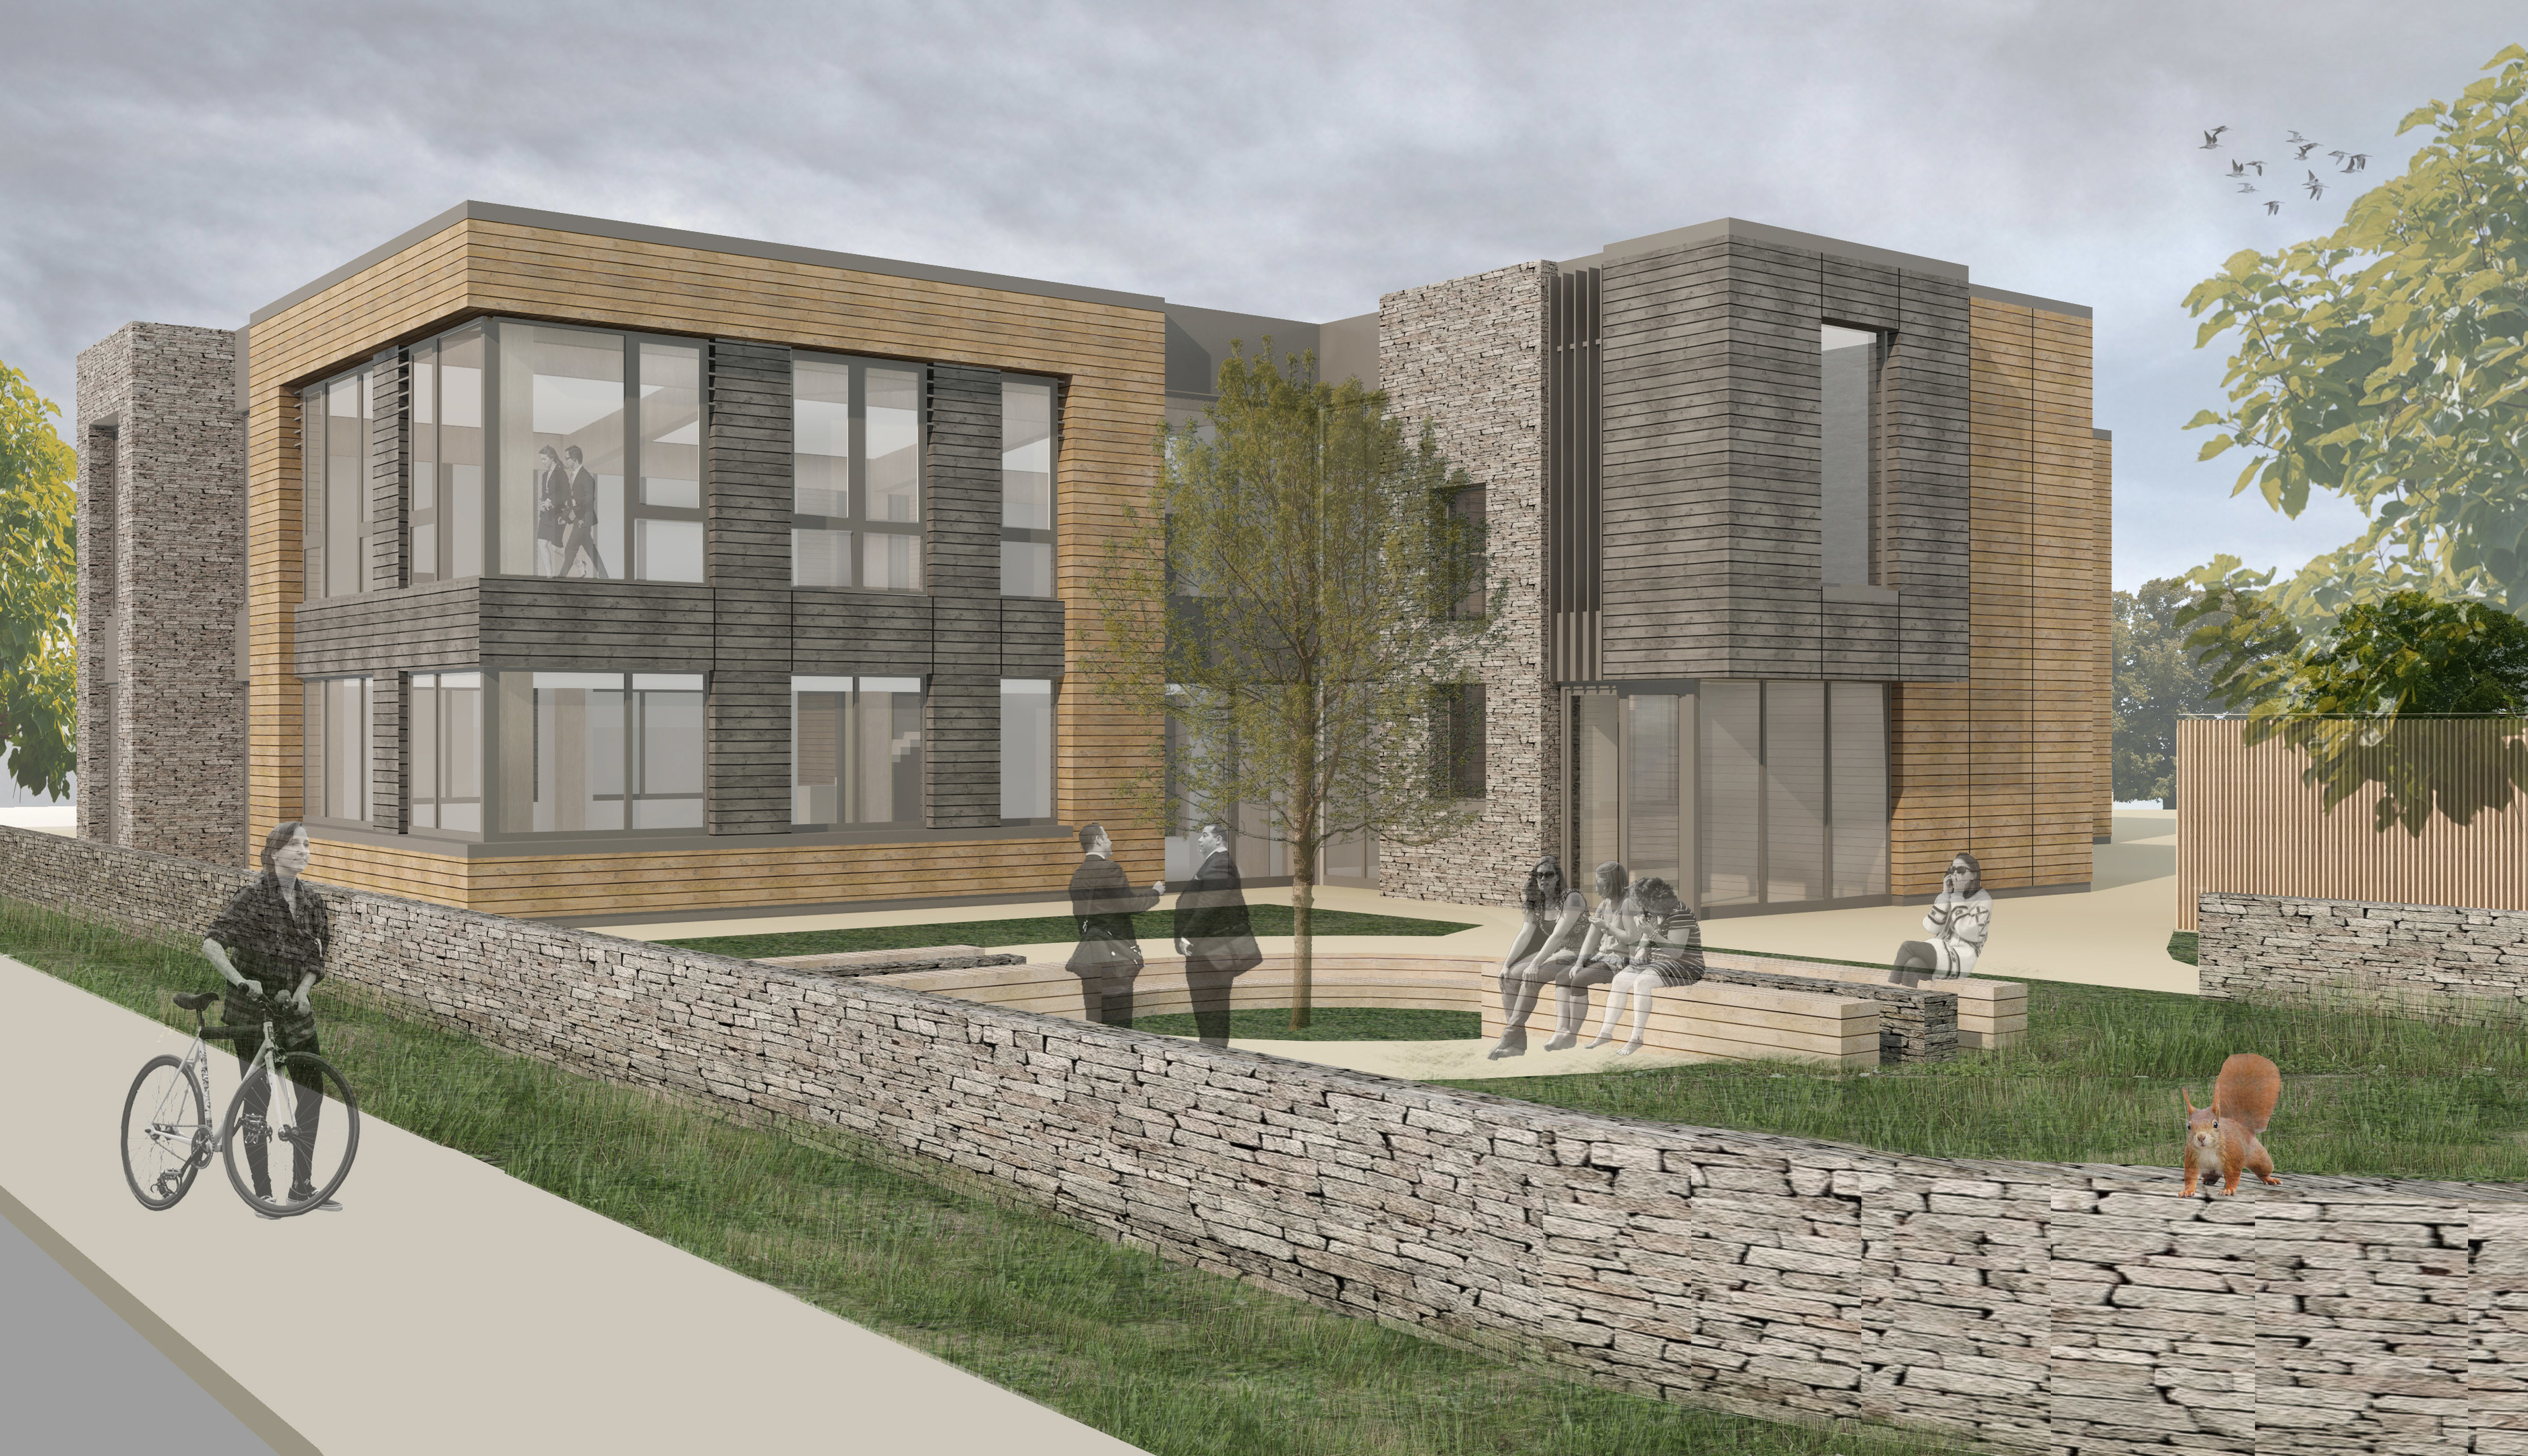 An artists impression of the Life Sciences facility to be built at Plot 8, Inverness Campus.